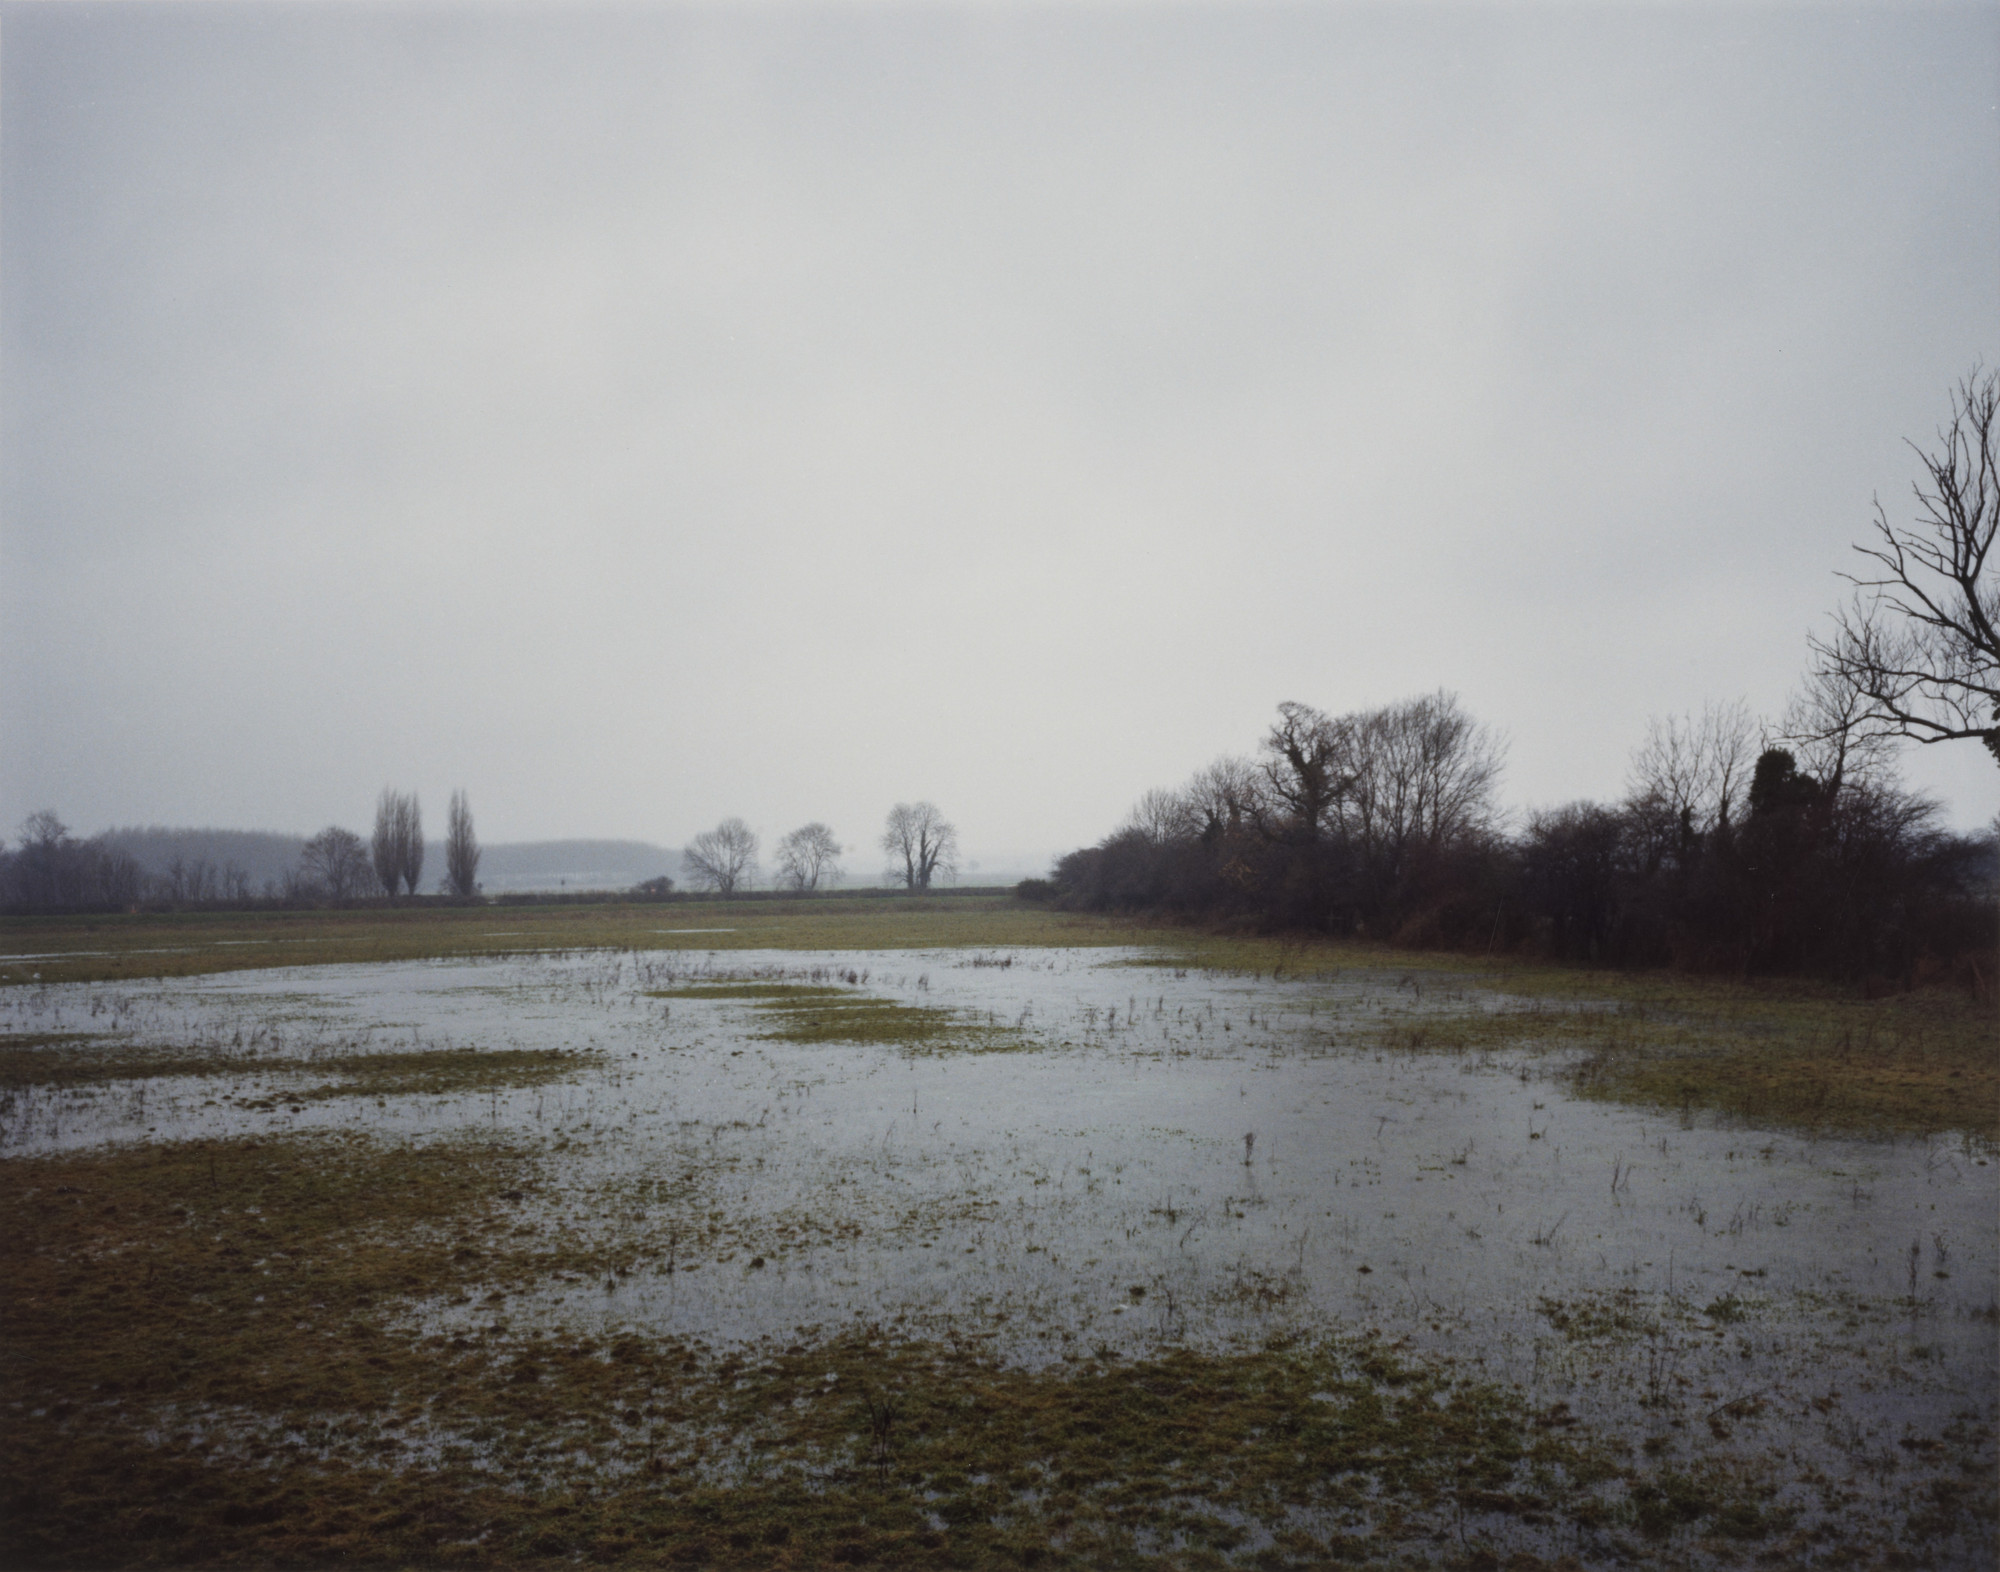 Paul Graham. Flooded Fields, Bedfordshire from the portfolio A1: The Great North Road. June 1982